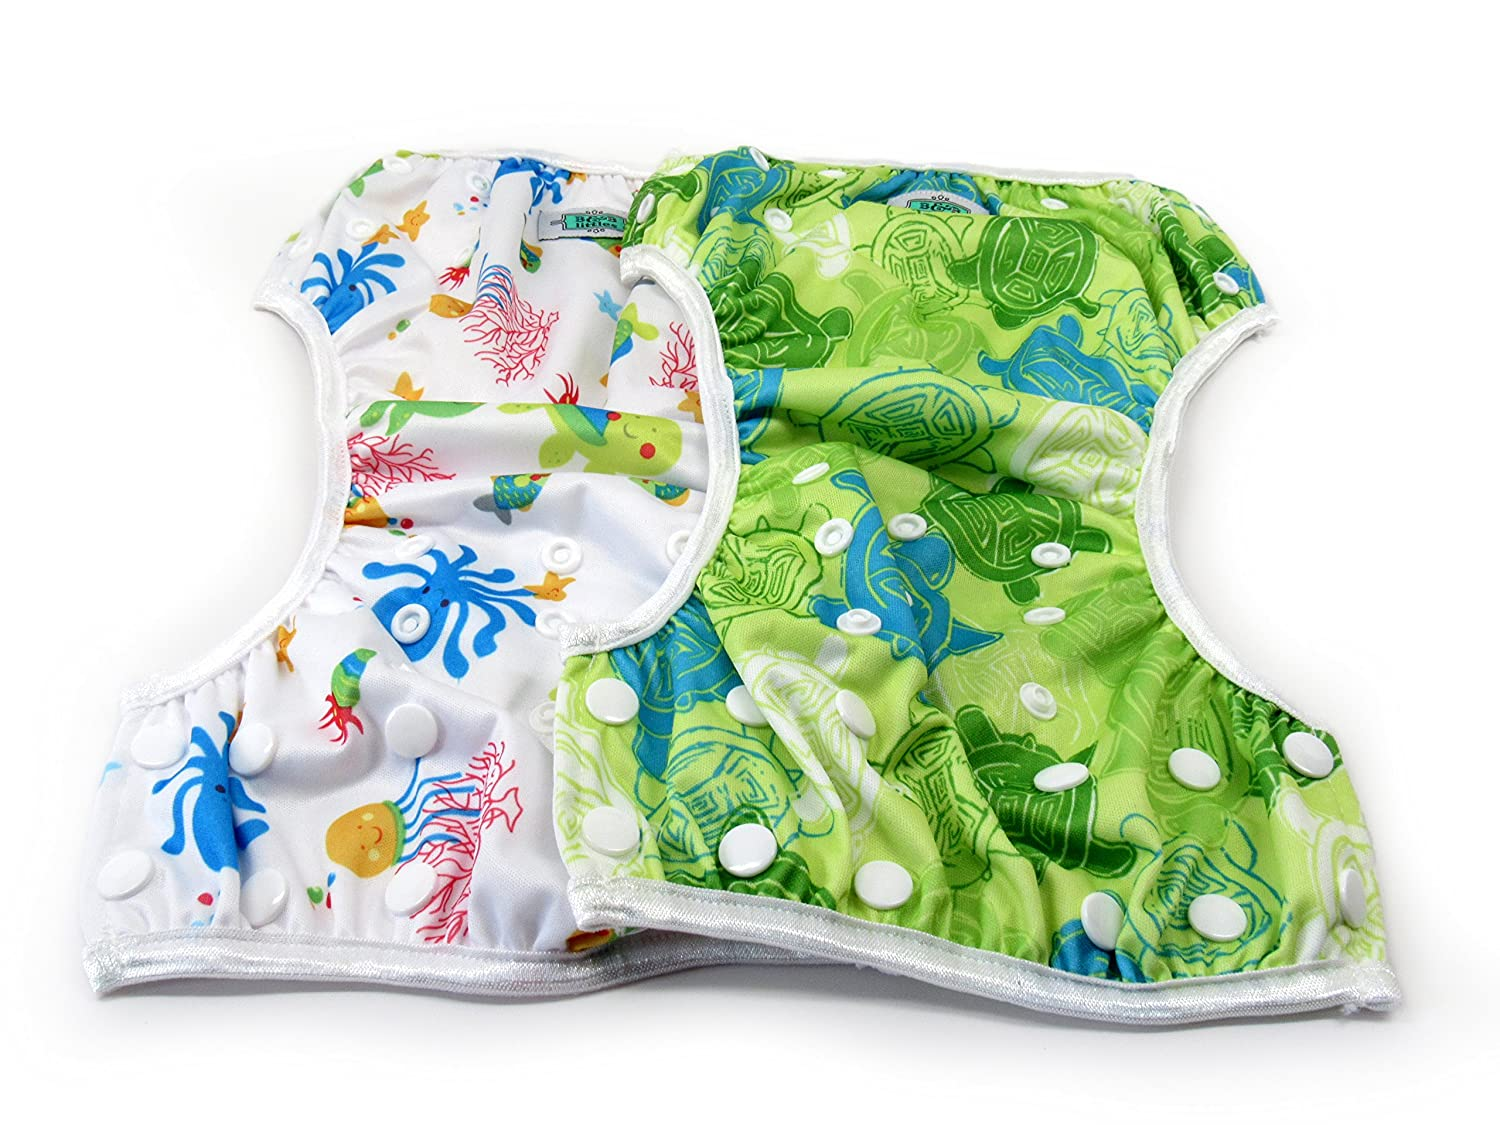 Nageuret Baby Swim Diapers By.